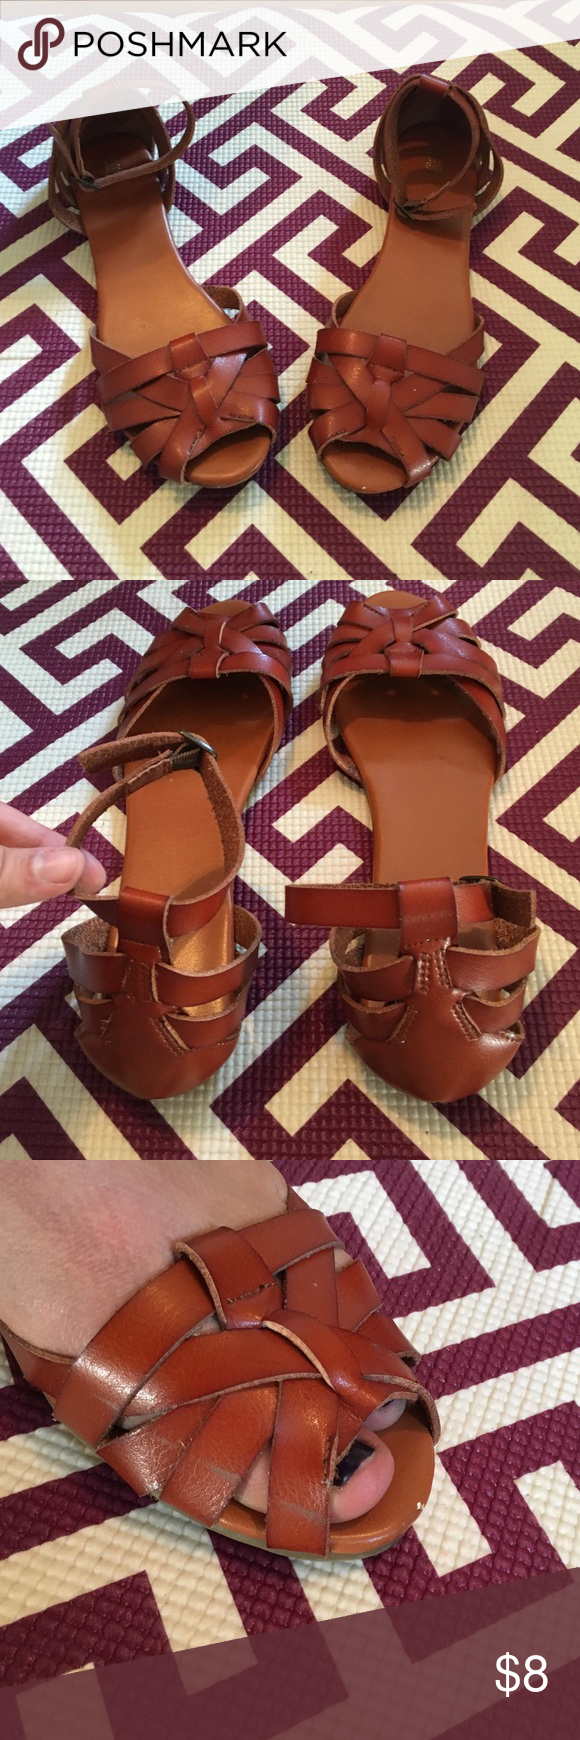 Mossimo sandals Cognac colored faux leather sandals. Worn once, small unnoticeable discoloration shown in last photo Mossimo Supply Co Shoes Sandals